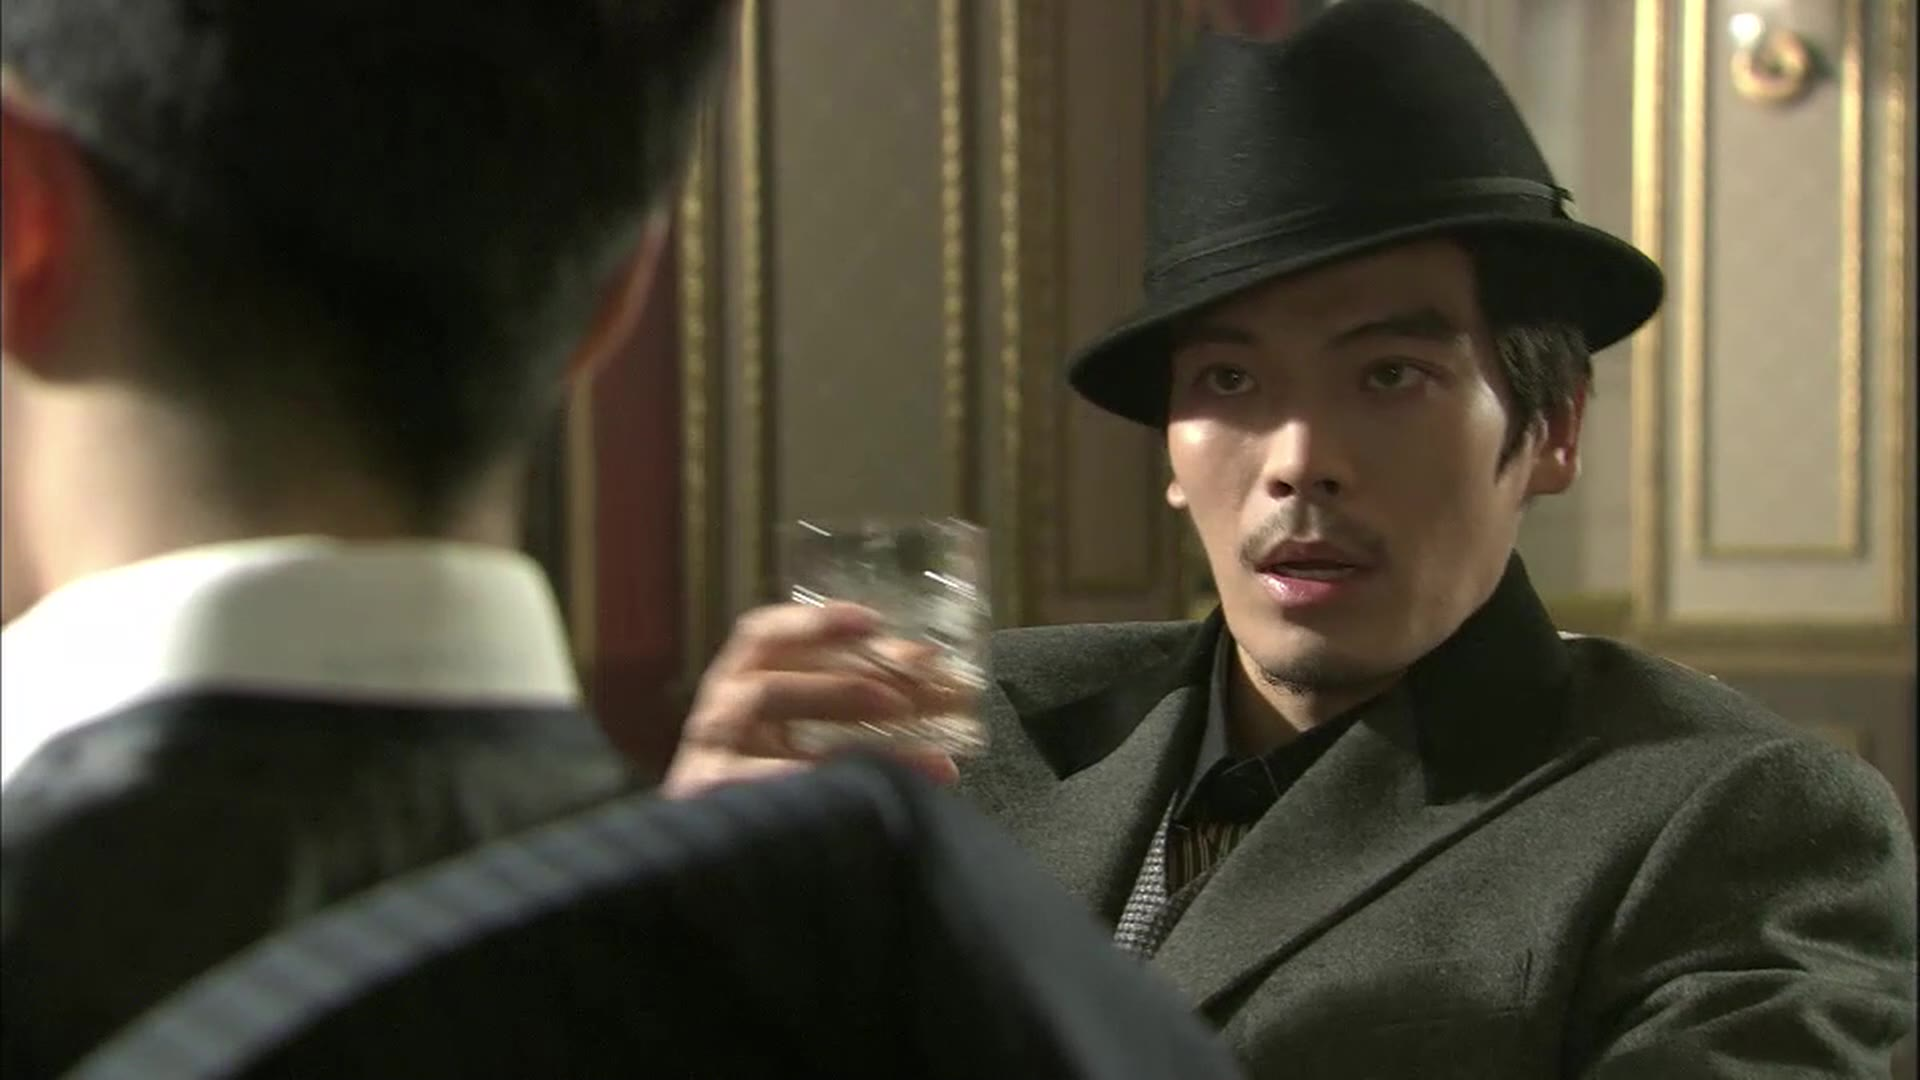 inspiring-generation Episode19- Highlight-02: Inspiring Generation